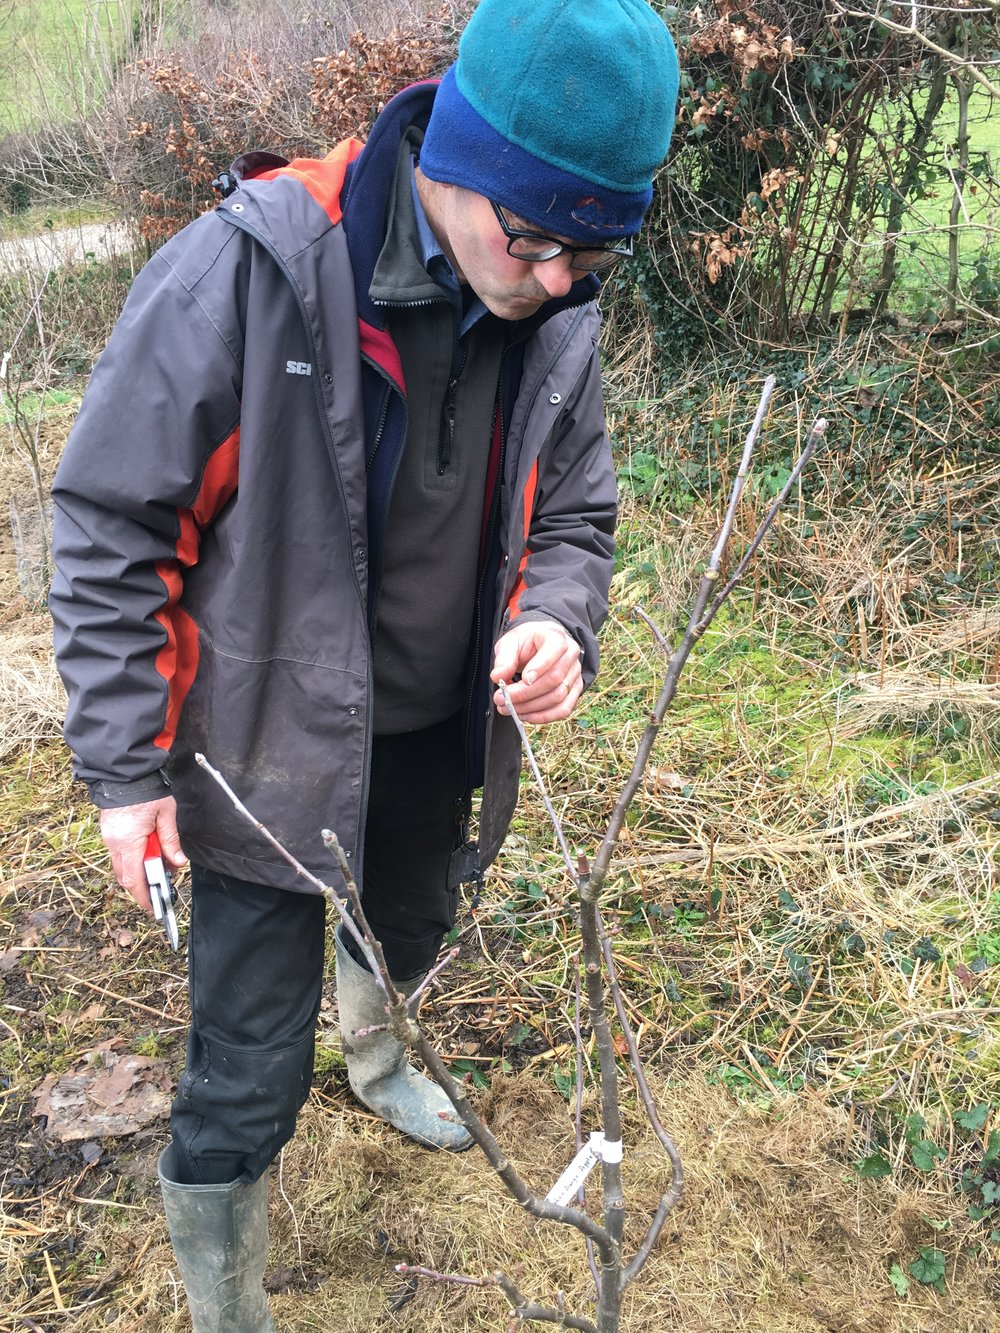 Huw still deciding how to prune to Blenhein Orange